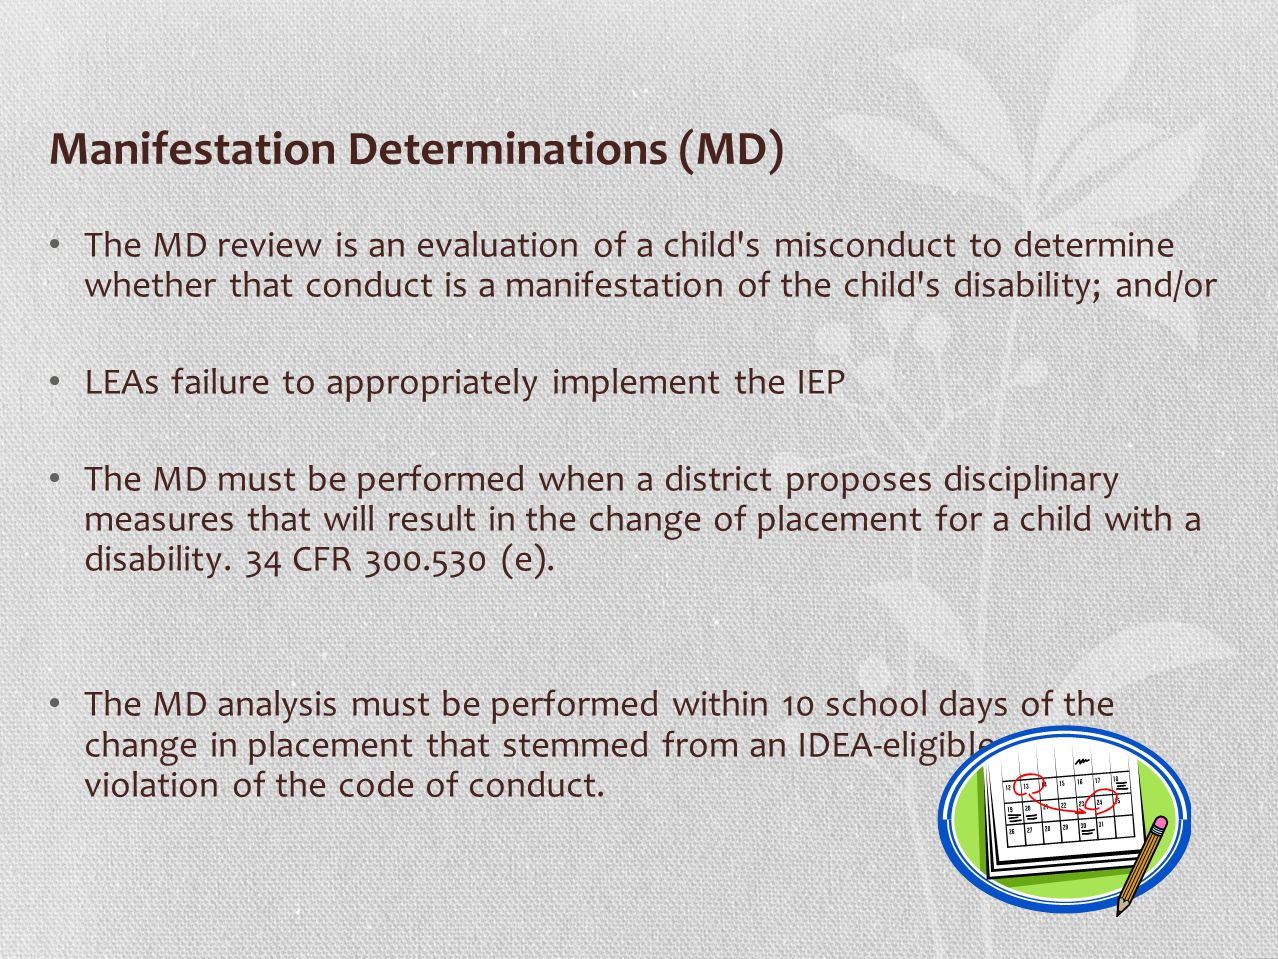 Manifestation Determinations (MD) The MD review is an evaluation of a child s misconduct to determine whether that conduct is a manifestation of the child s disability; and/or LEAs failure to appropriately implement the IEP The MD must be performed when a district proposes disciplinary measures that will result in the change of placement for a child with a disability.